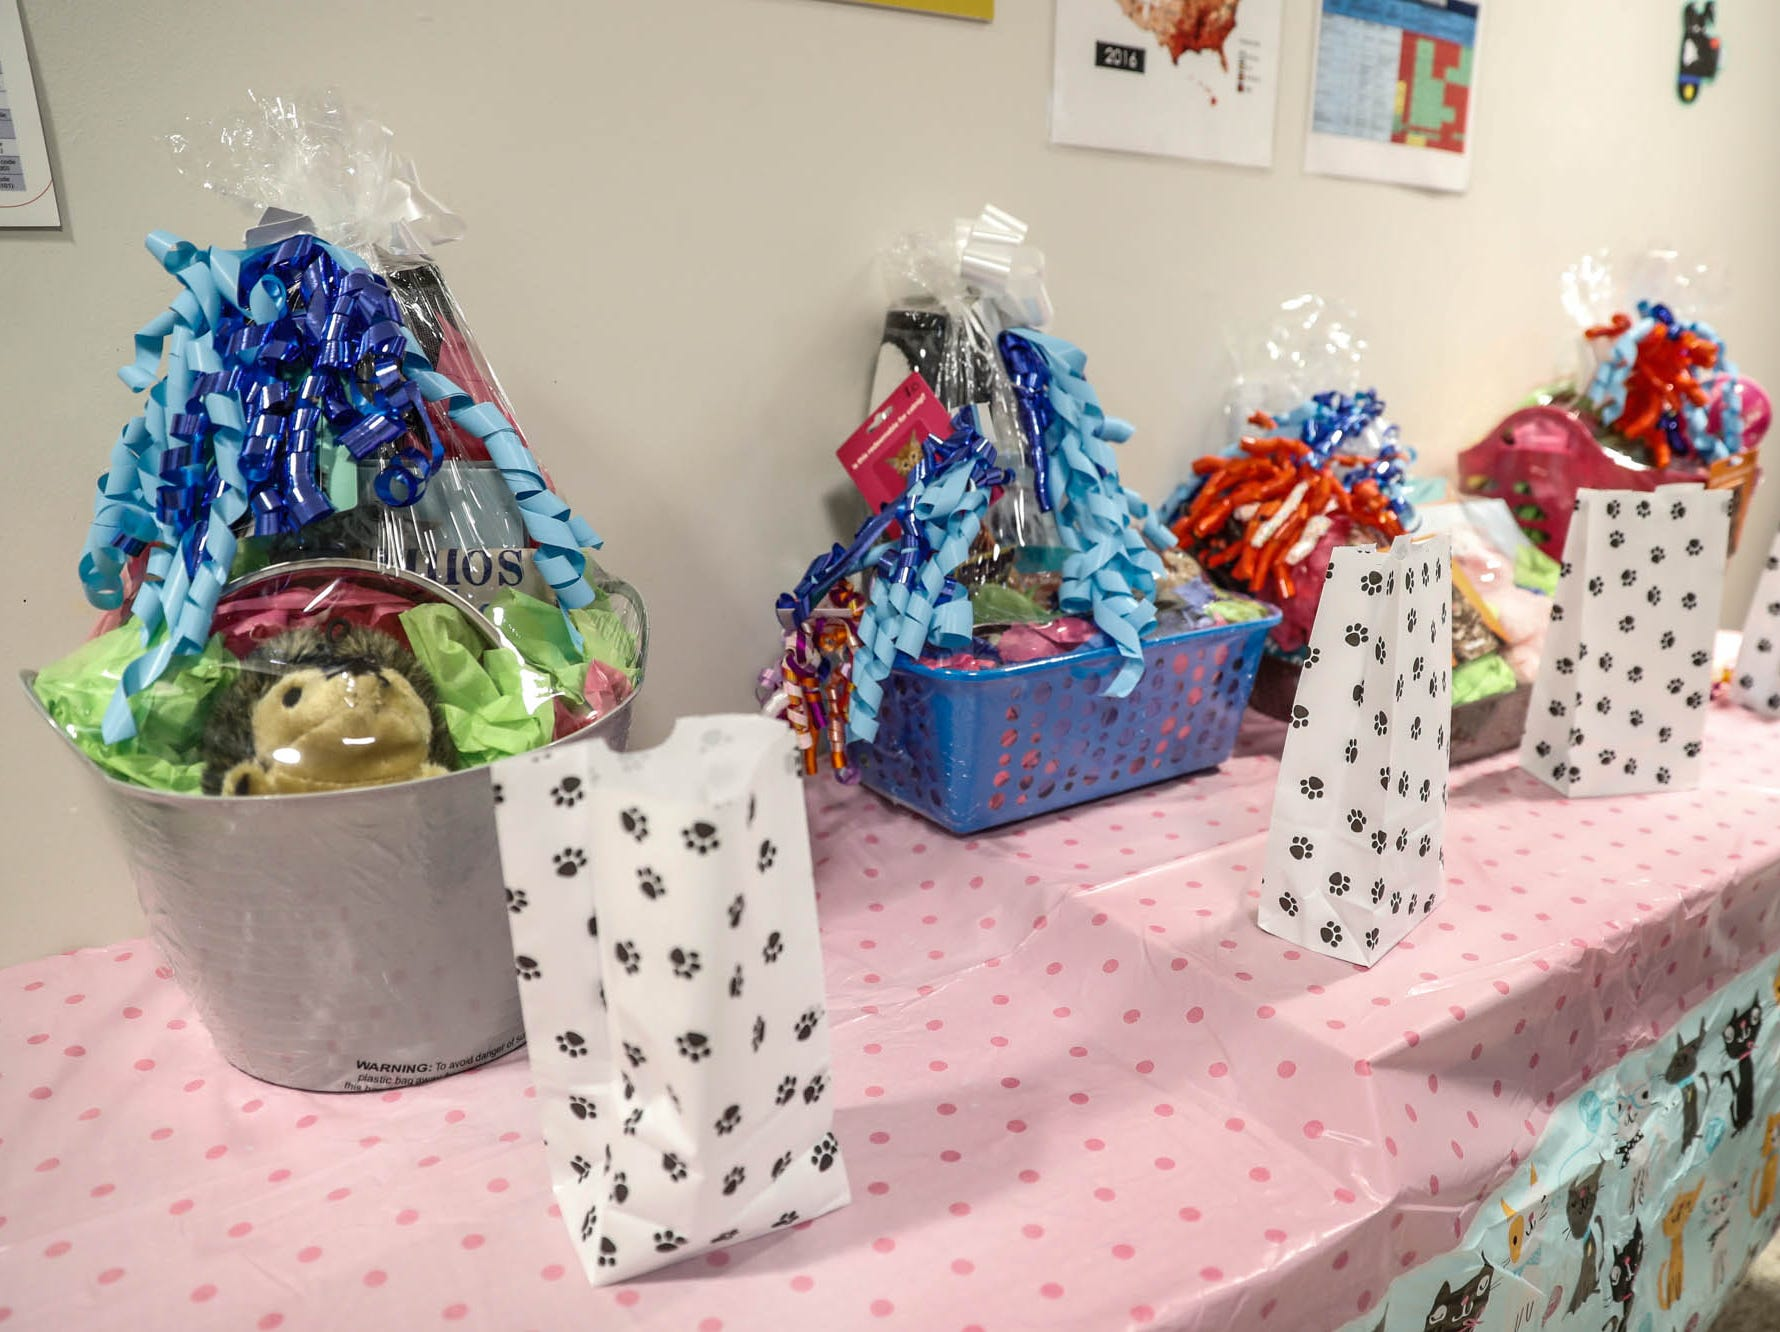 Prizes for the silent auction and raffle are on display at Indy Humane during their Puppy and Kitten Baby Shower, held at Indy Humane on Sunday, March 10, 2019. The event educates families on Indy Humane's foster care program, as Fosters are needed in the spring during puppy and kitten season.